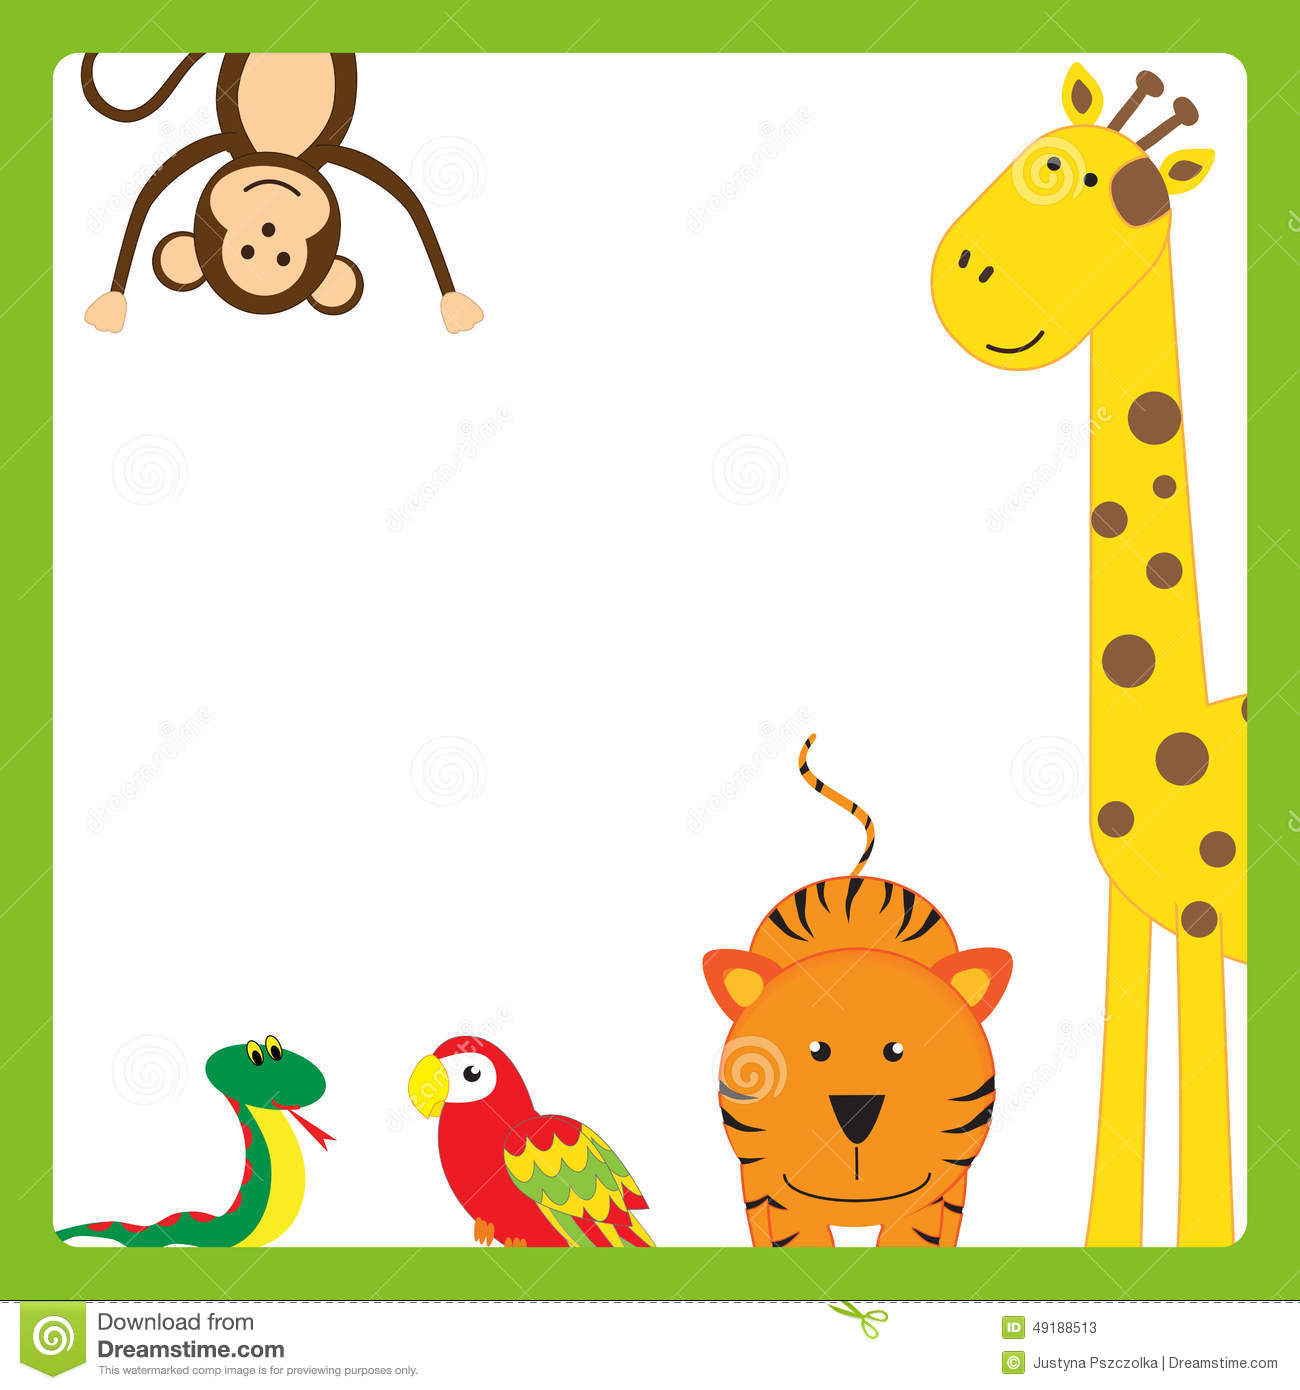 Stock Illustration Animal Frame Cute Abstract Cheerful Tropical Animals Image49188513 on Green Border